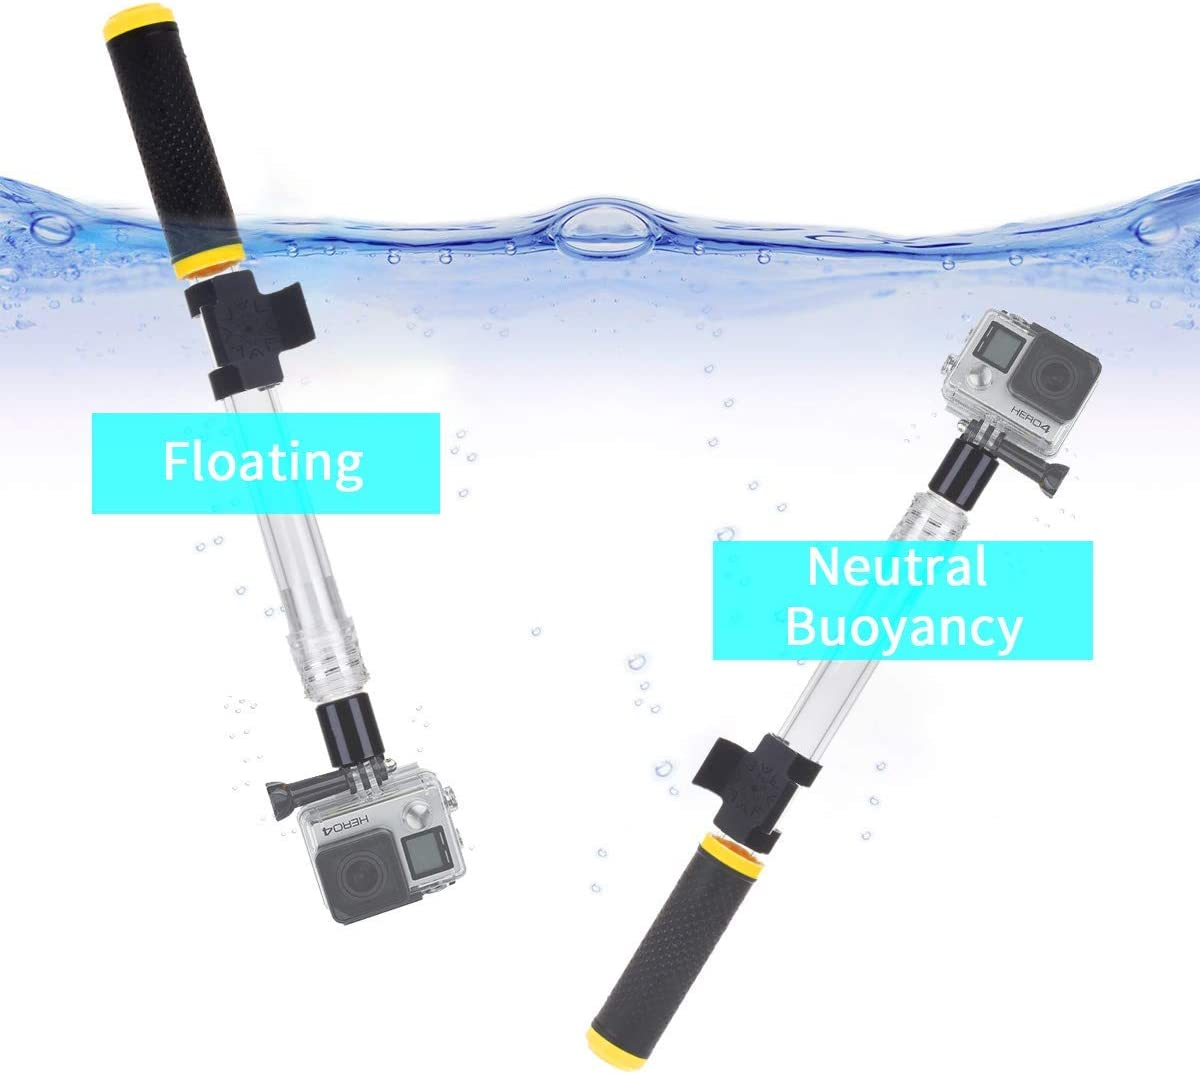 Extendable Monopod Selfie Stick 14-24 with Mount Clip for GoPro Hero 6//5//4//3 AKASO YI 4K Action Camera Gopro Extension Pole Waterproof Telescopic Pole Number-One Transparent Floating Hand Grip